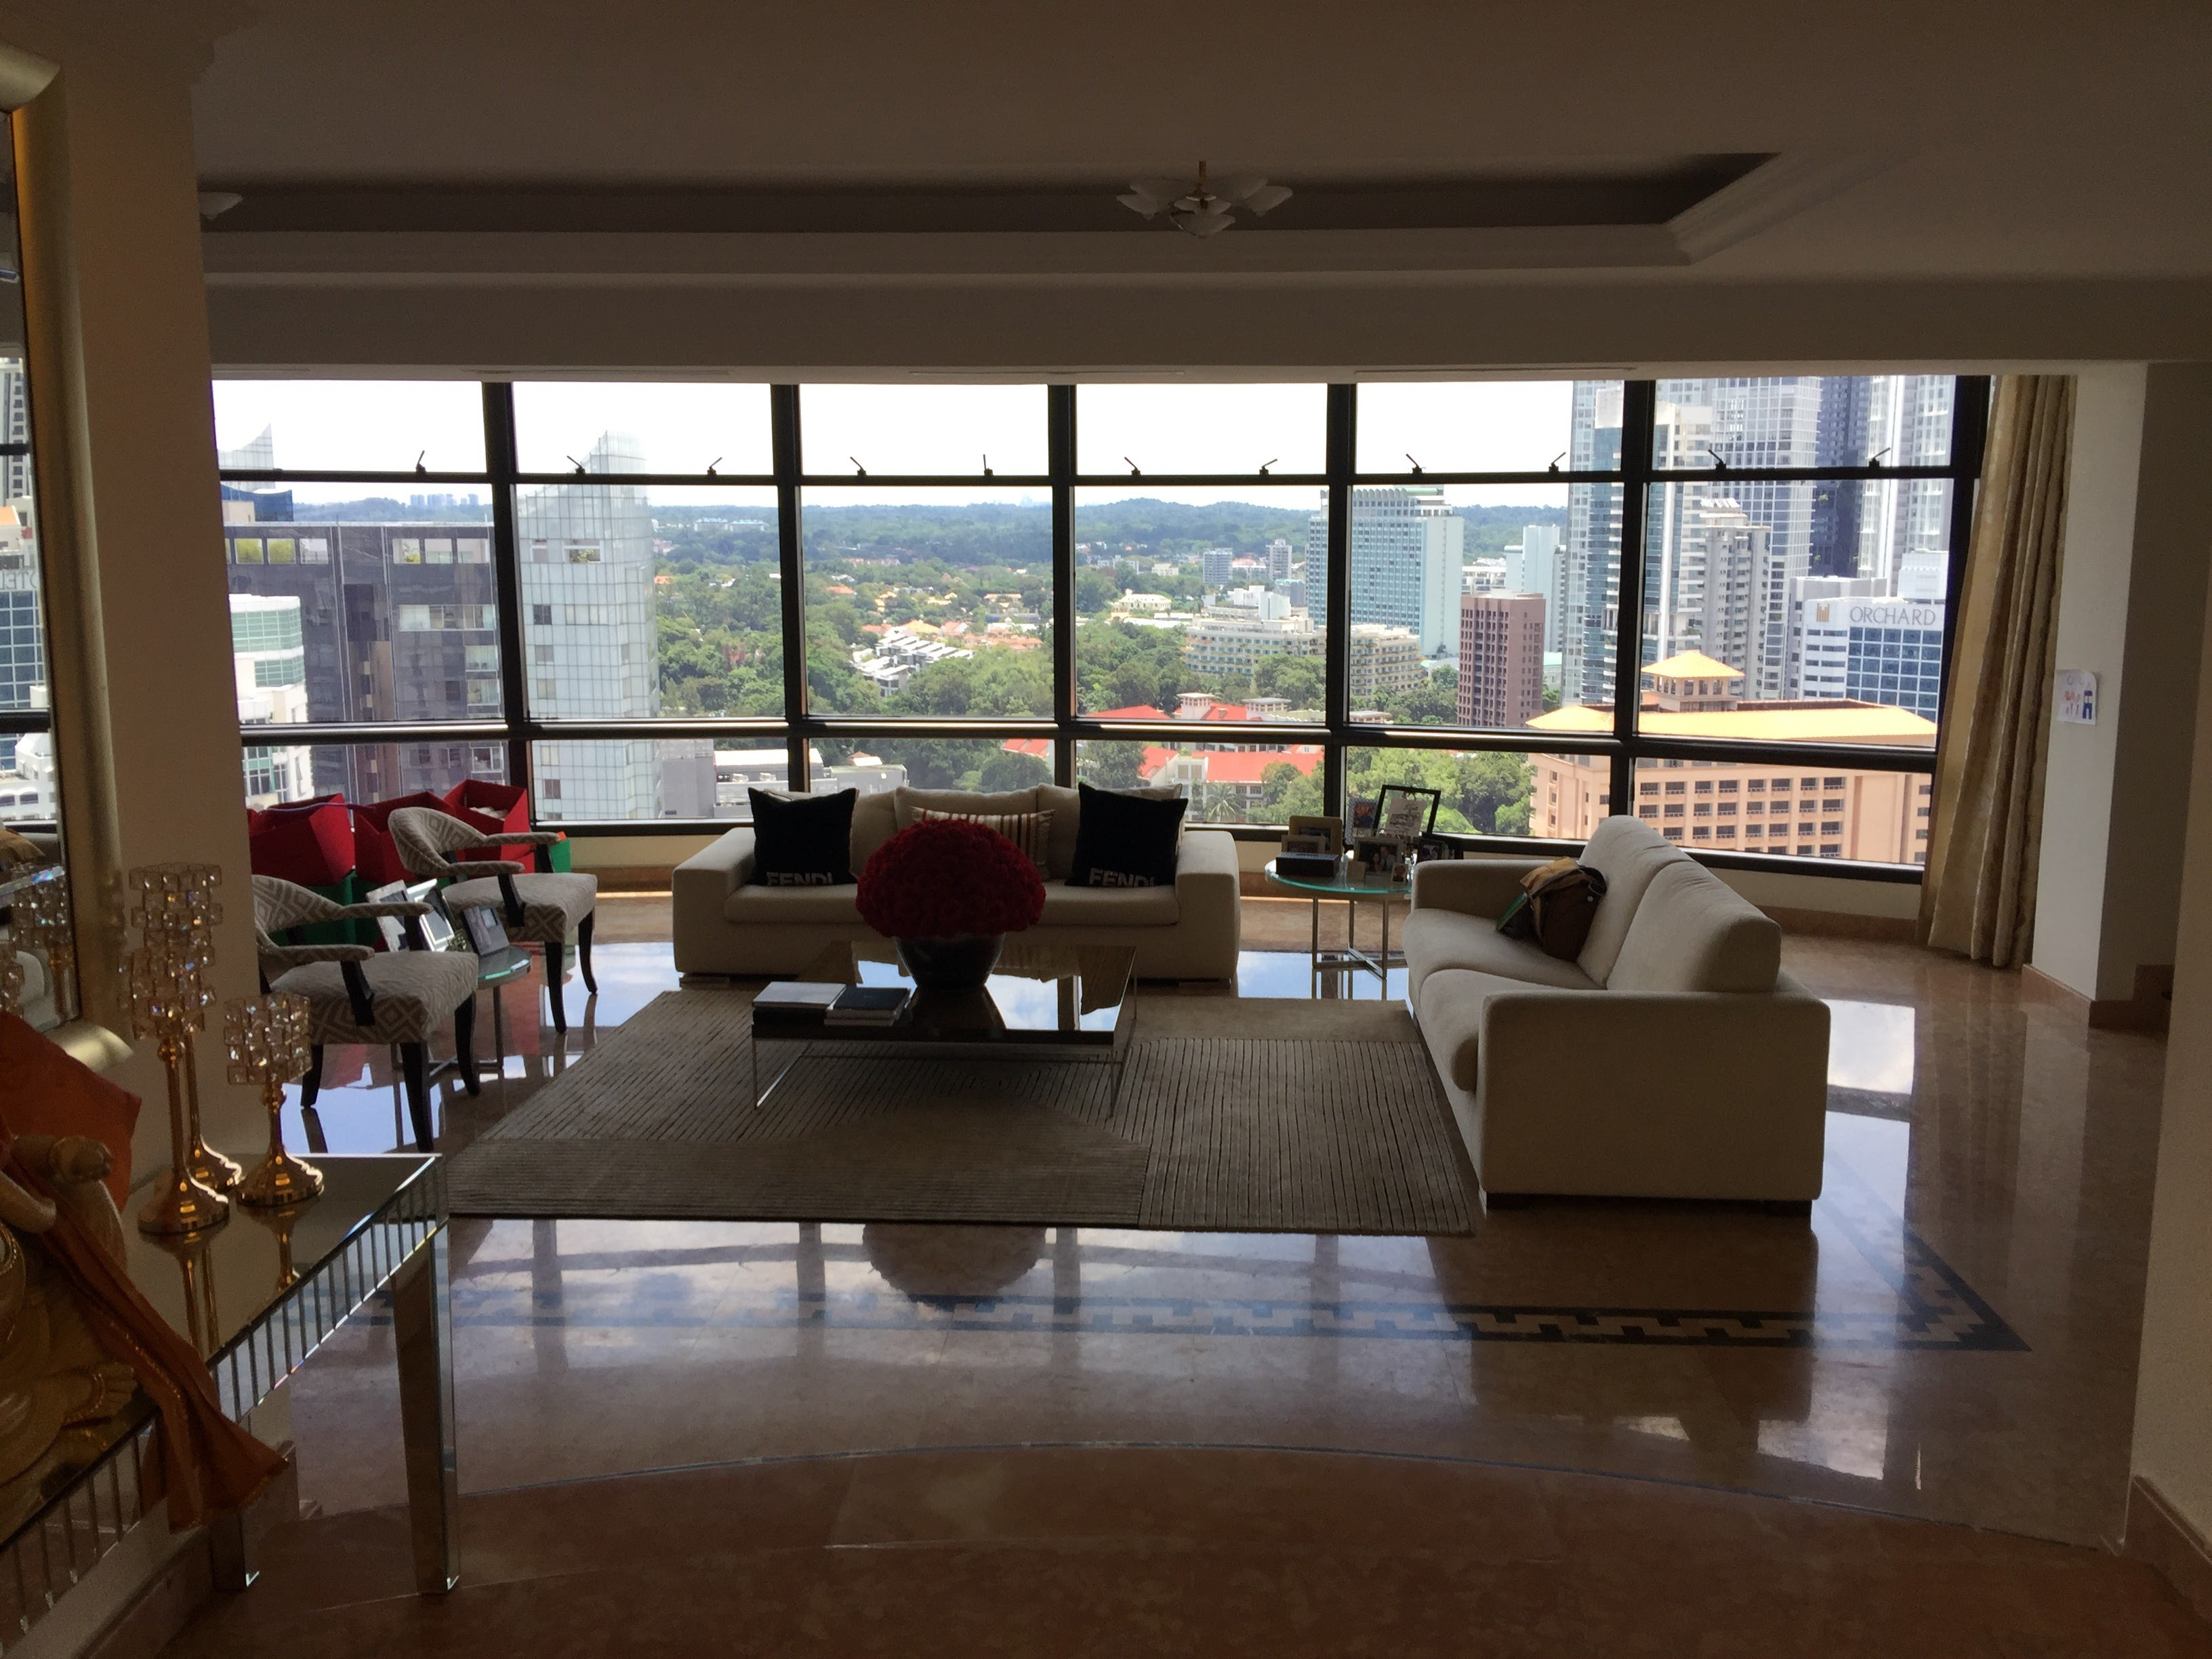 orchard_road_condo_feng_shui